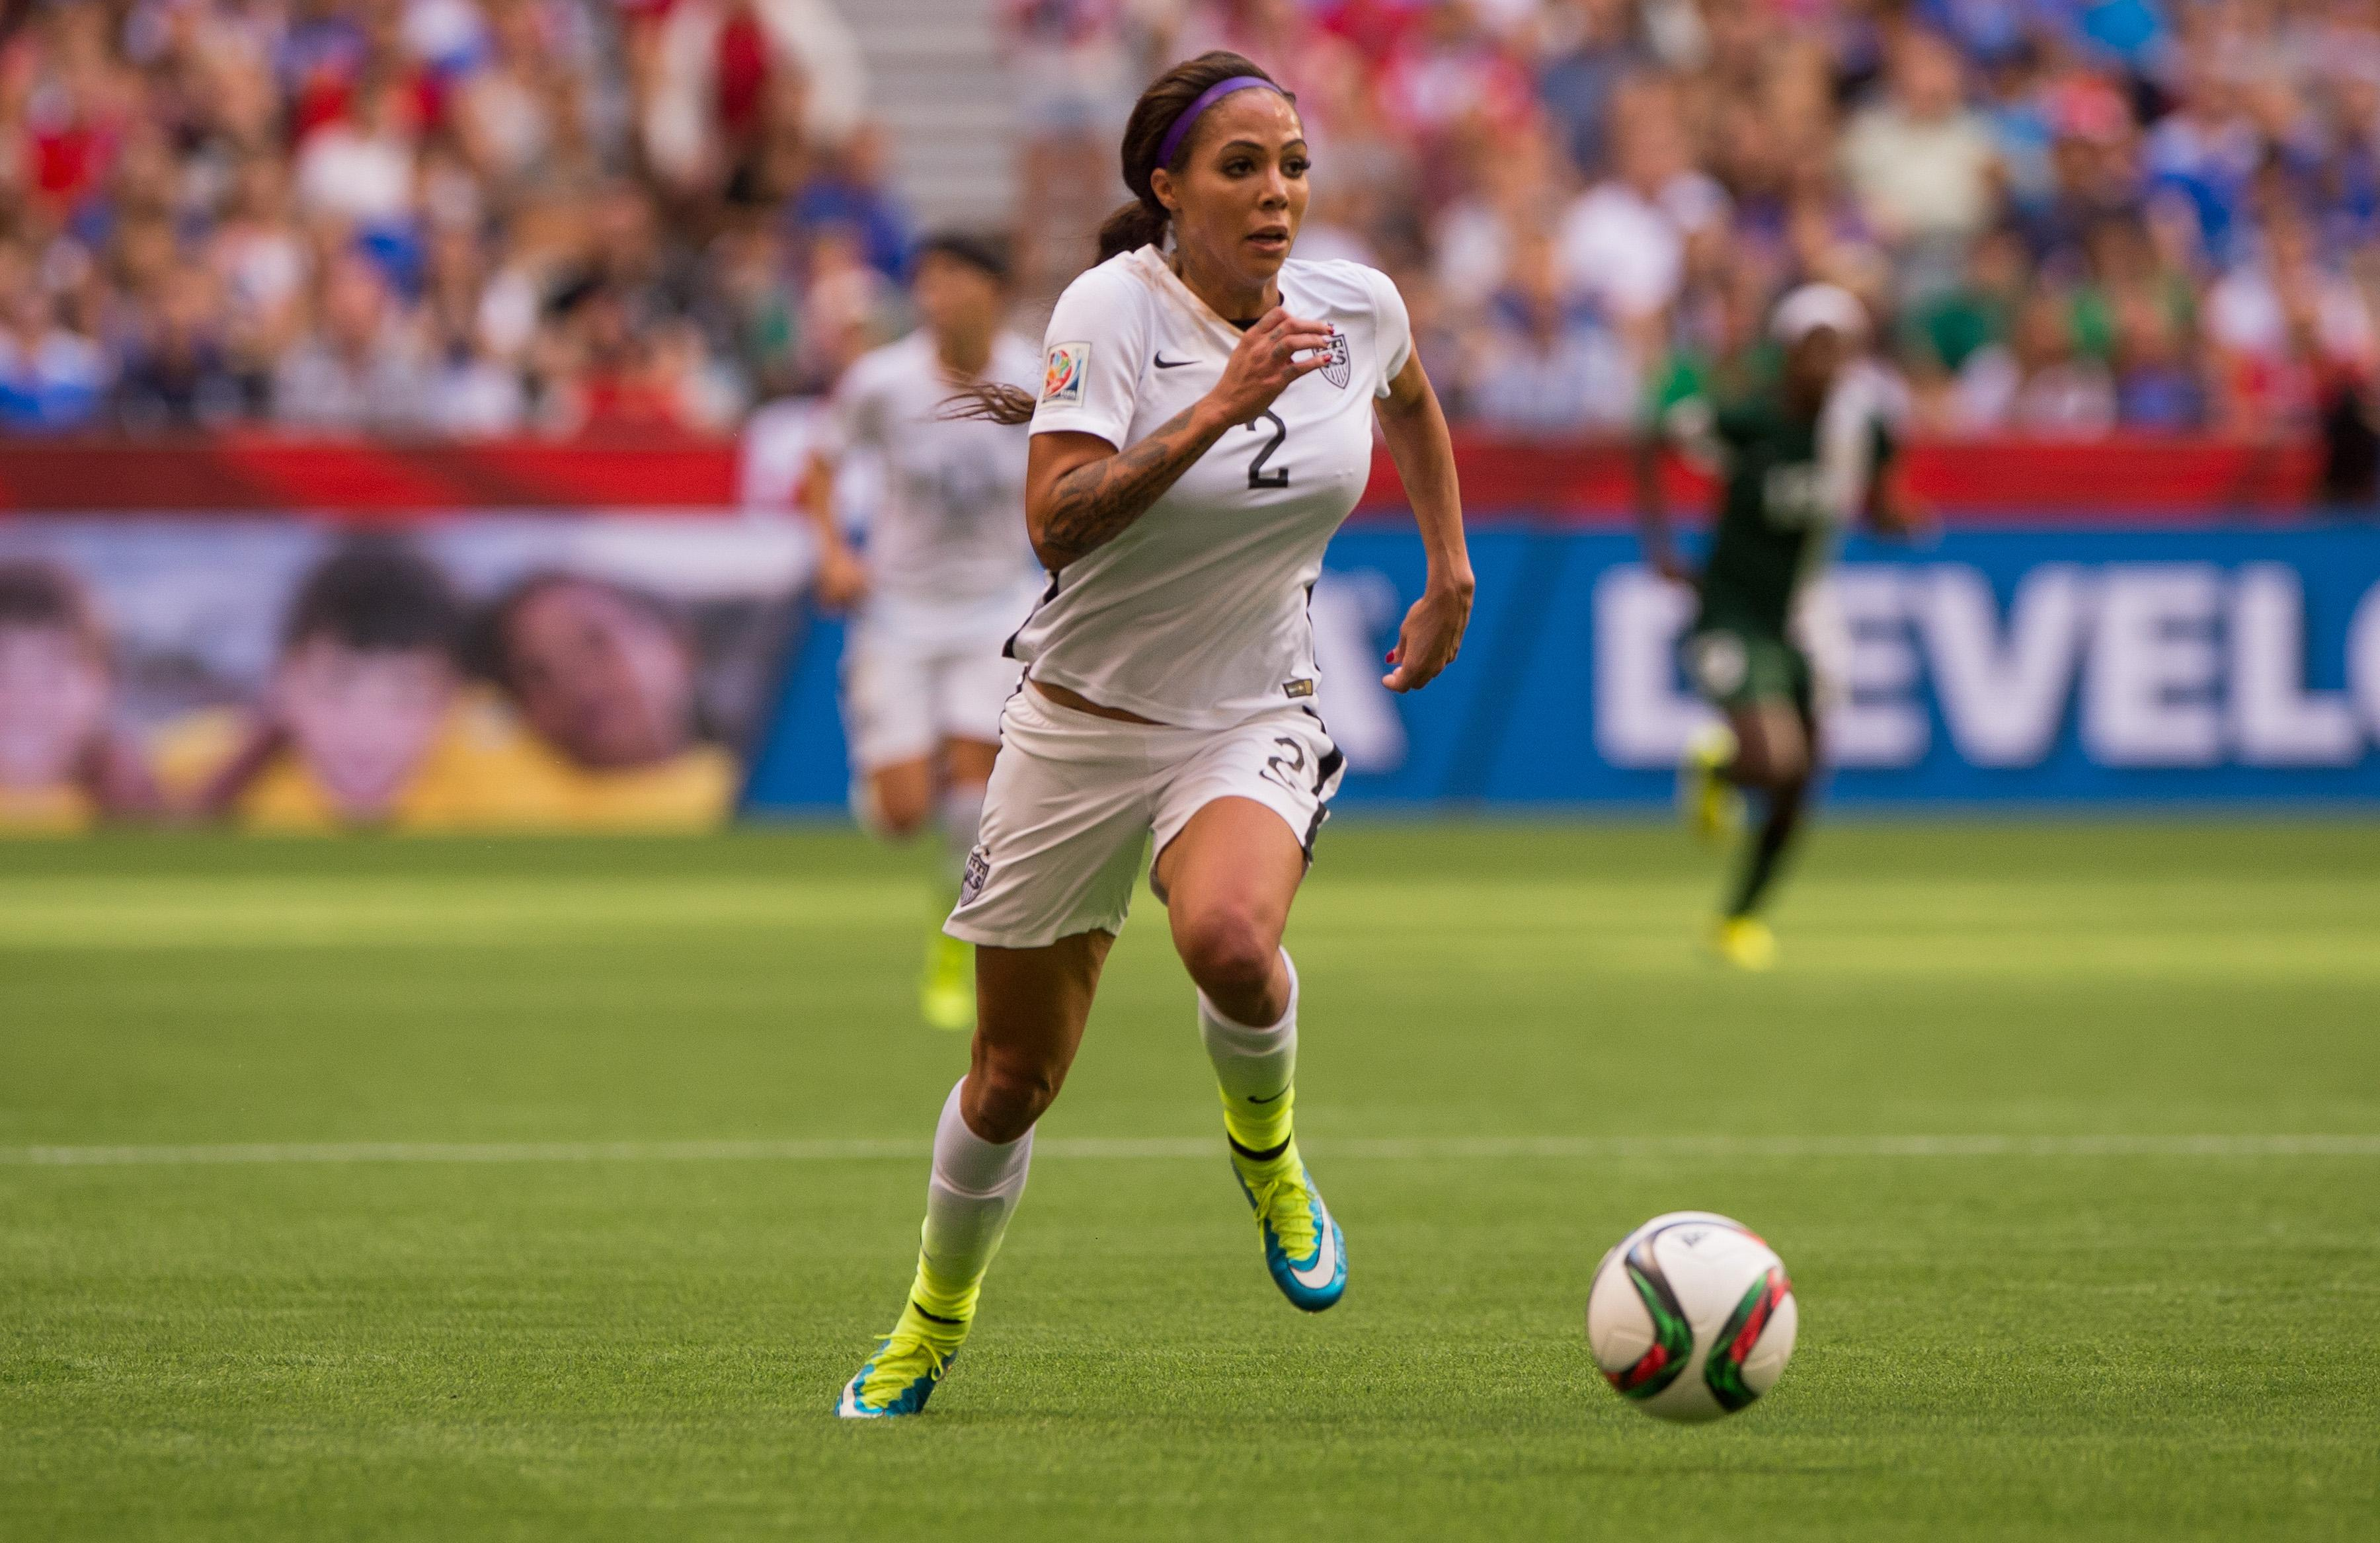 Former USWNT forward Sydney Leroux Dwyer announces birth of second child  just before win against France